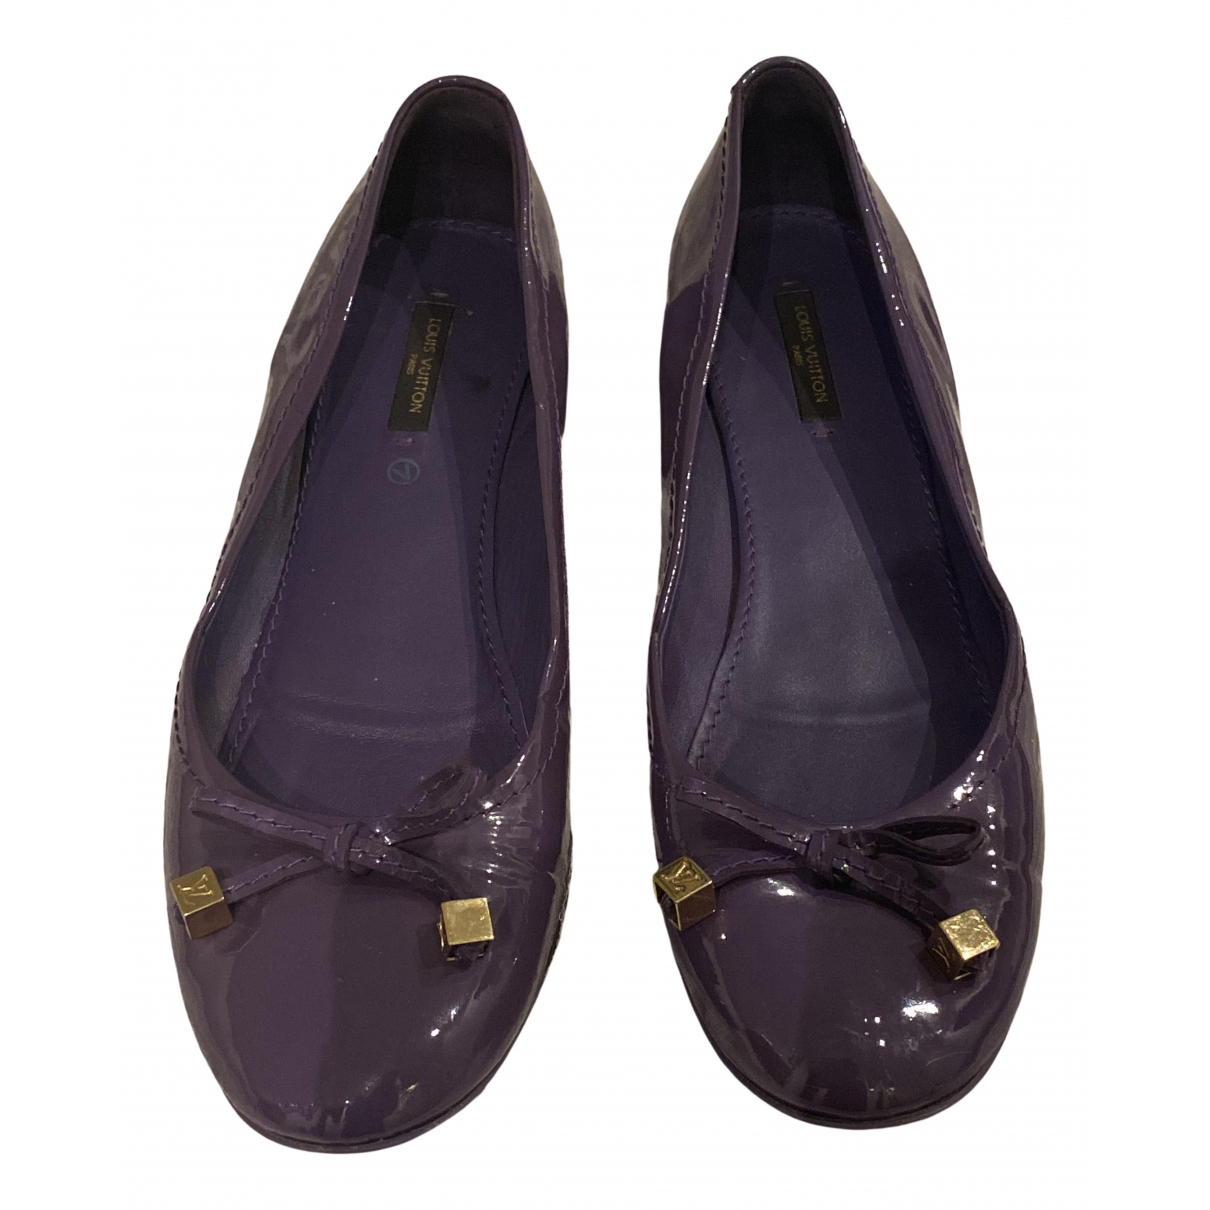 Louis Vuitton \N Purple Patent leather Ballet flats for Women 41 EU